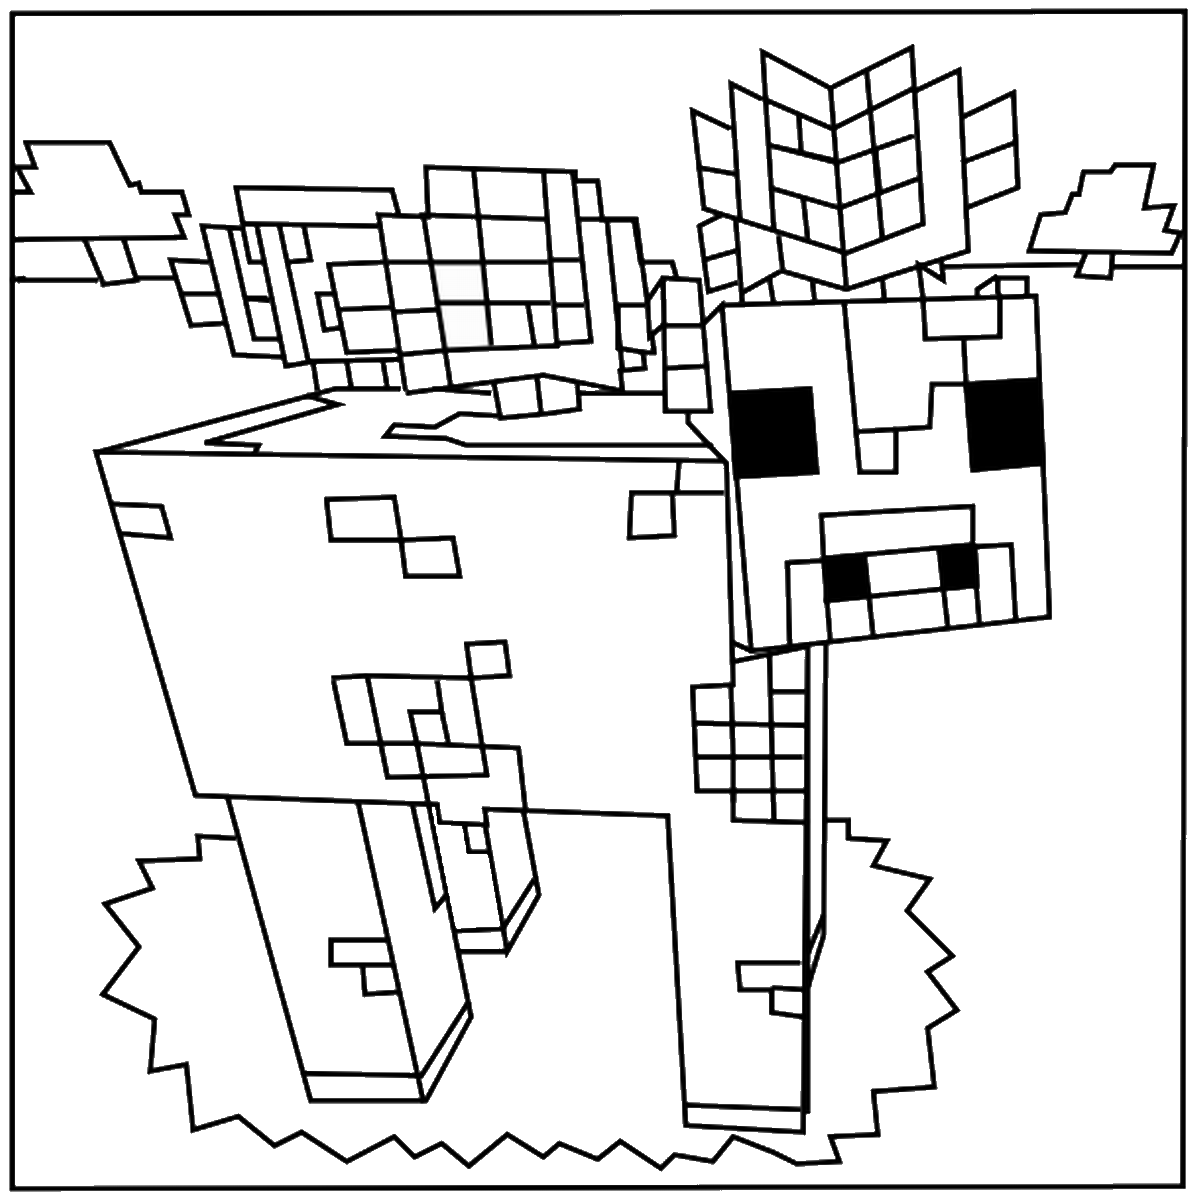 This is a picture of Exhilarating Minecraft Coloring Pages Free